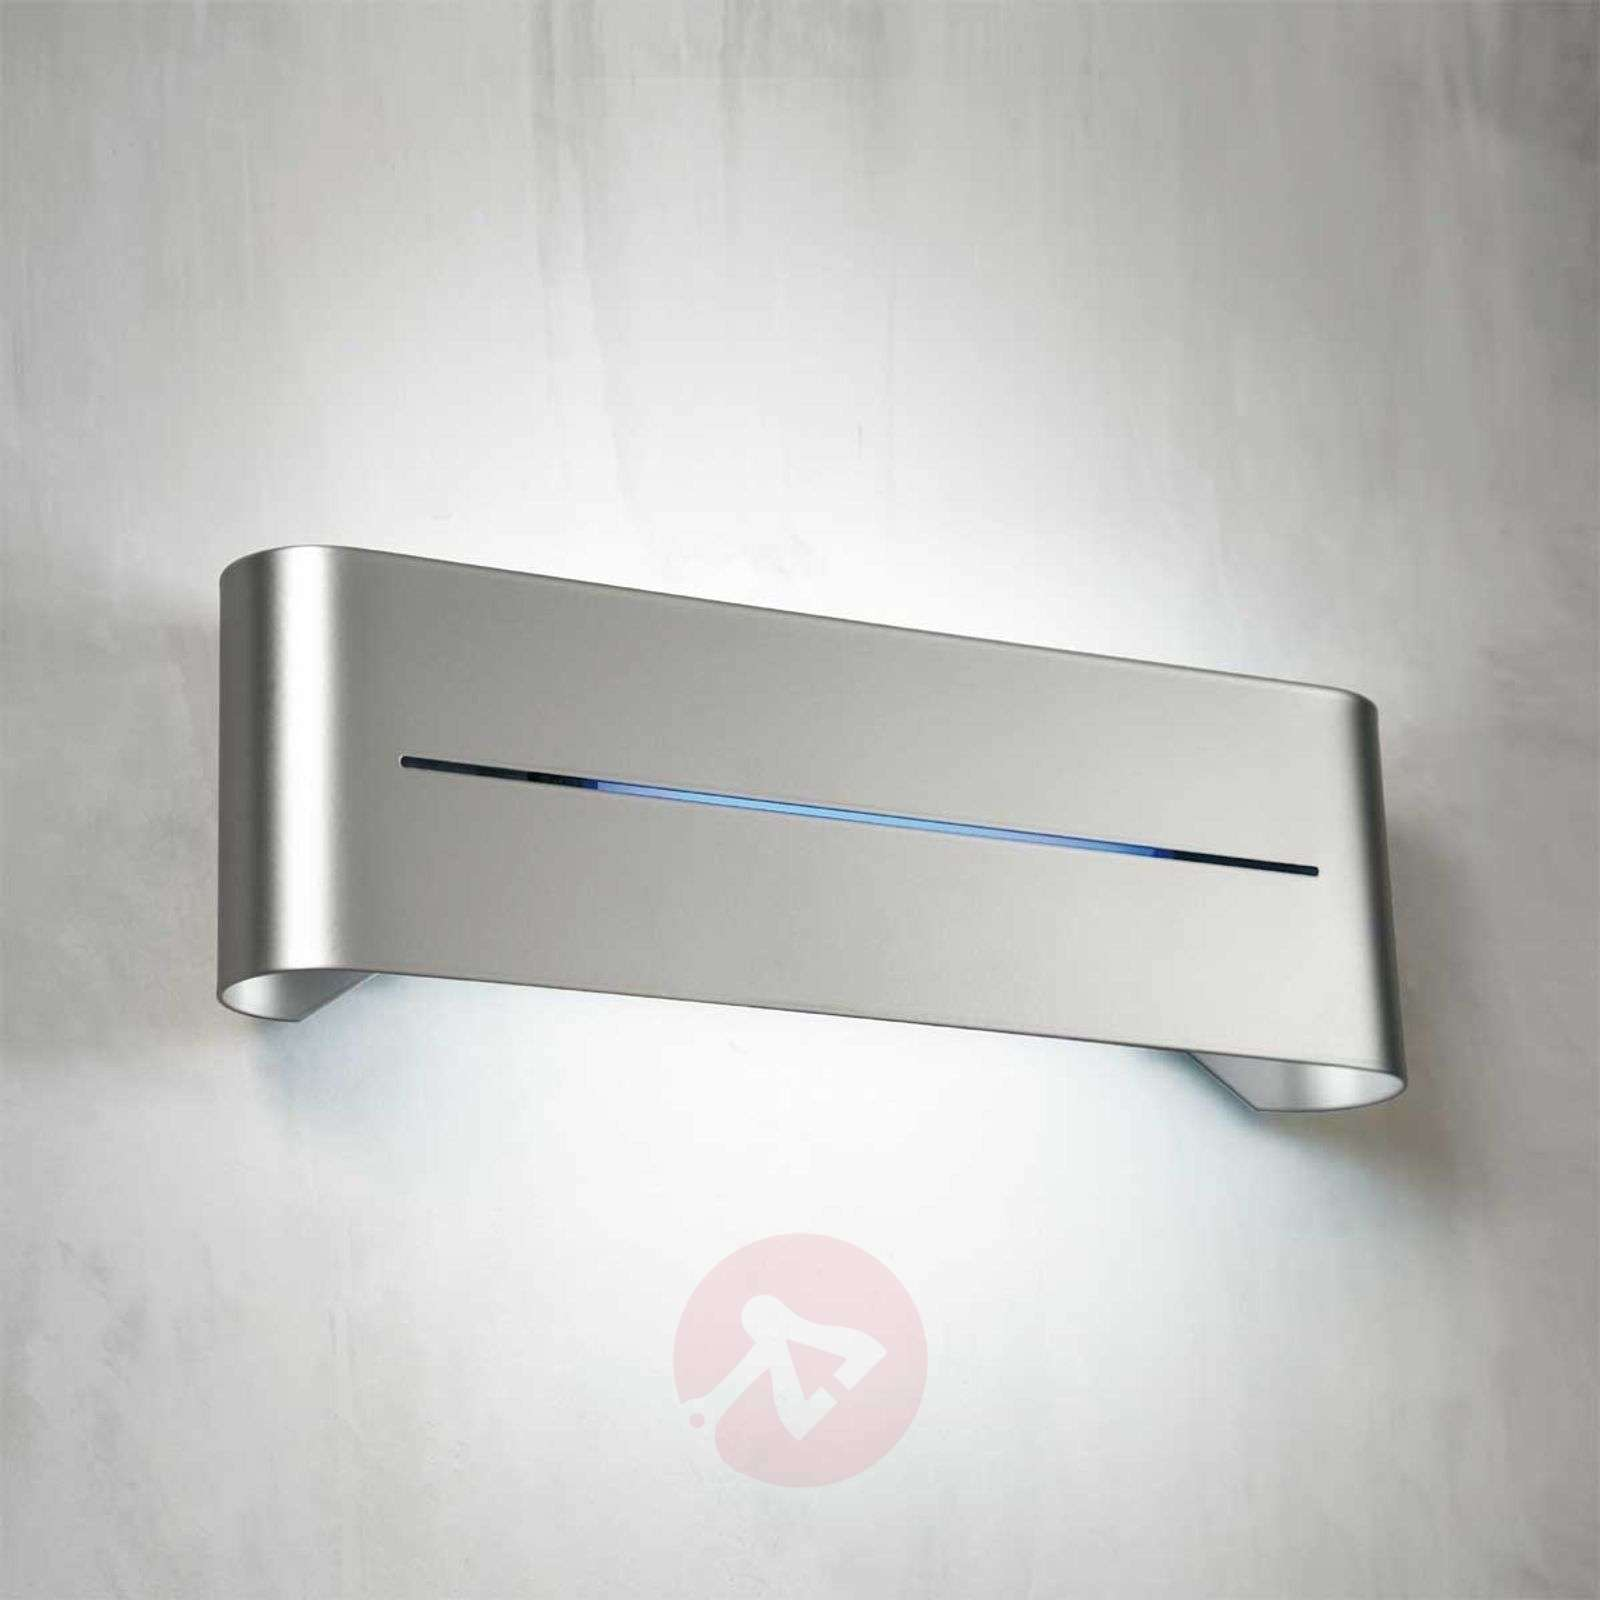 Limbo Wall Light Chrome : Indirect wall light Limbo, E27 38 cm Lights.co.uk